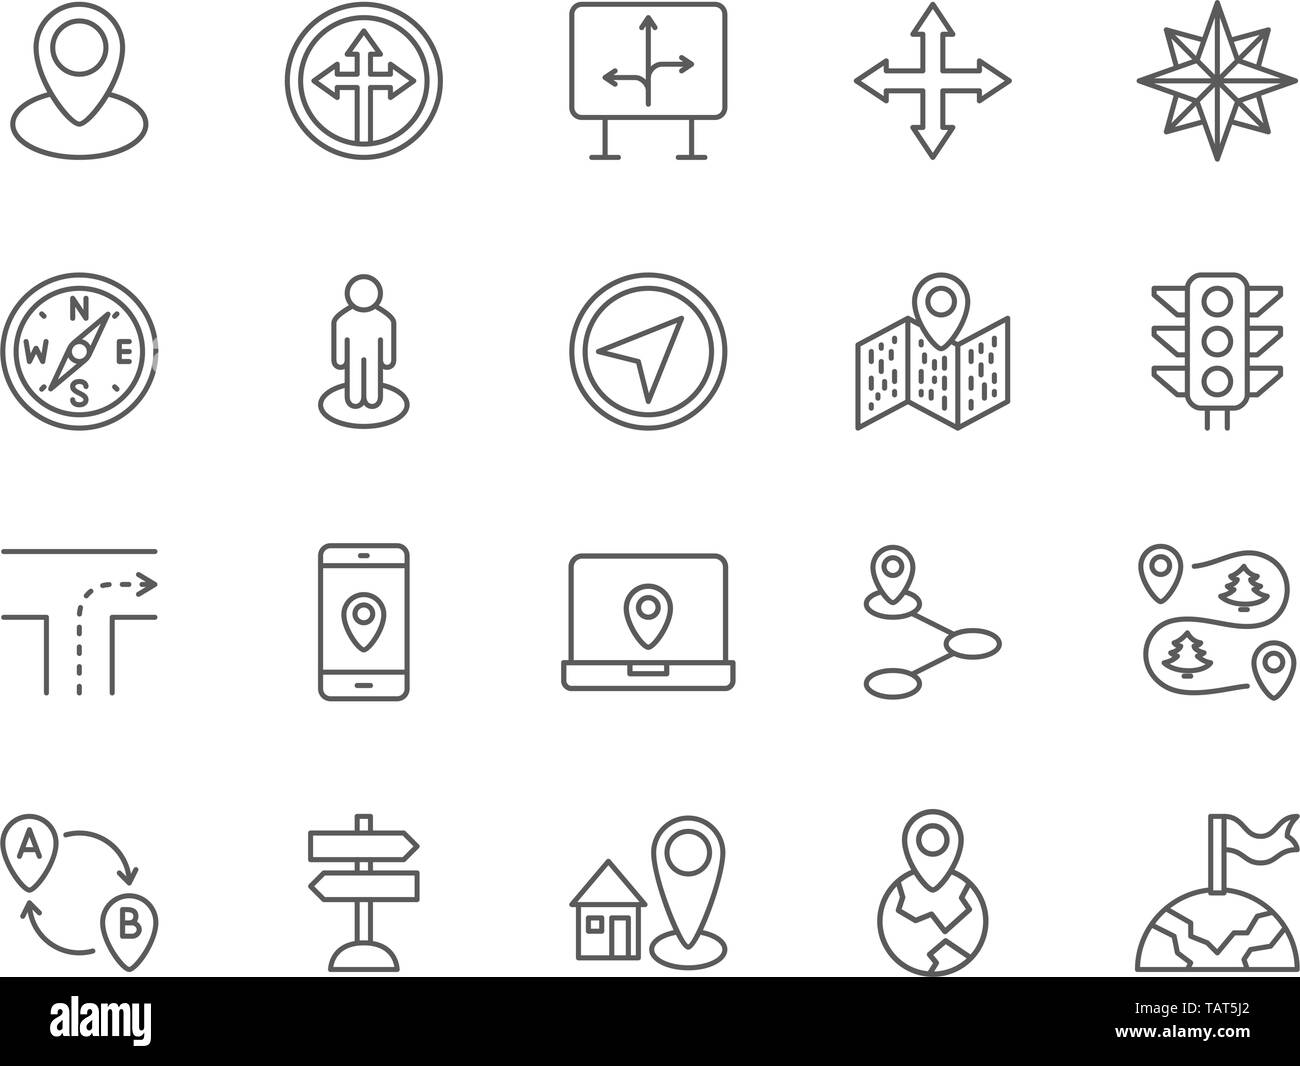 Set of Navigation Line Icons. Compass, Location Pin, GPS Navigation and more. - Stock Vector